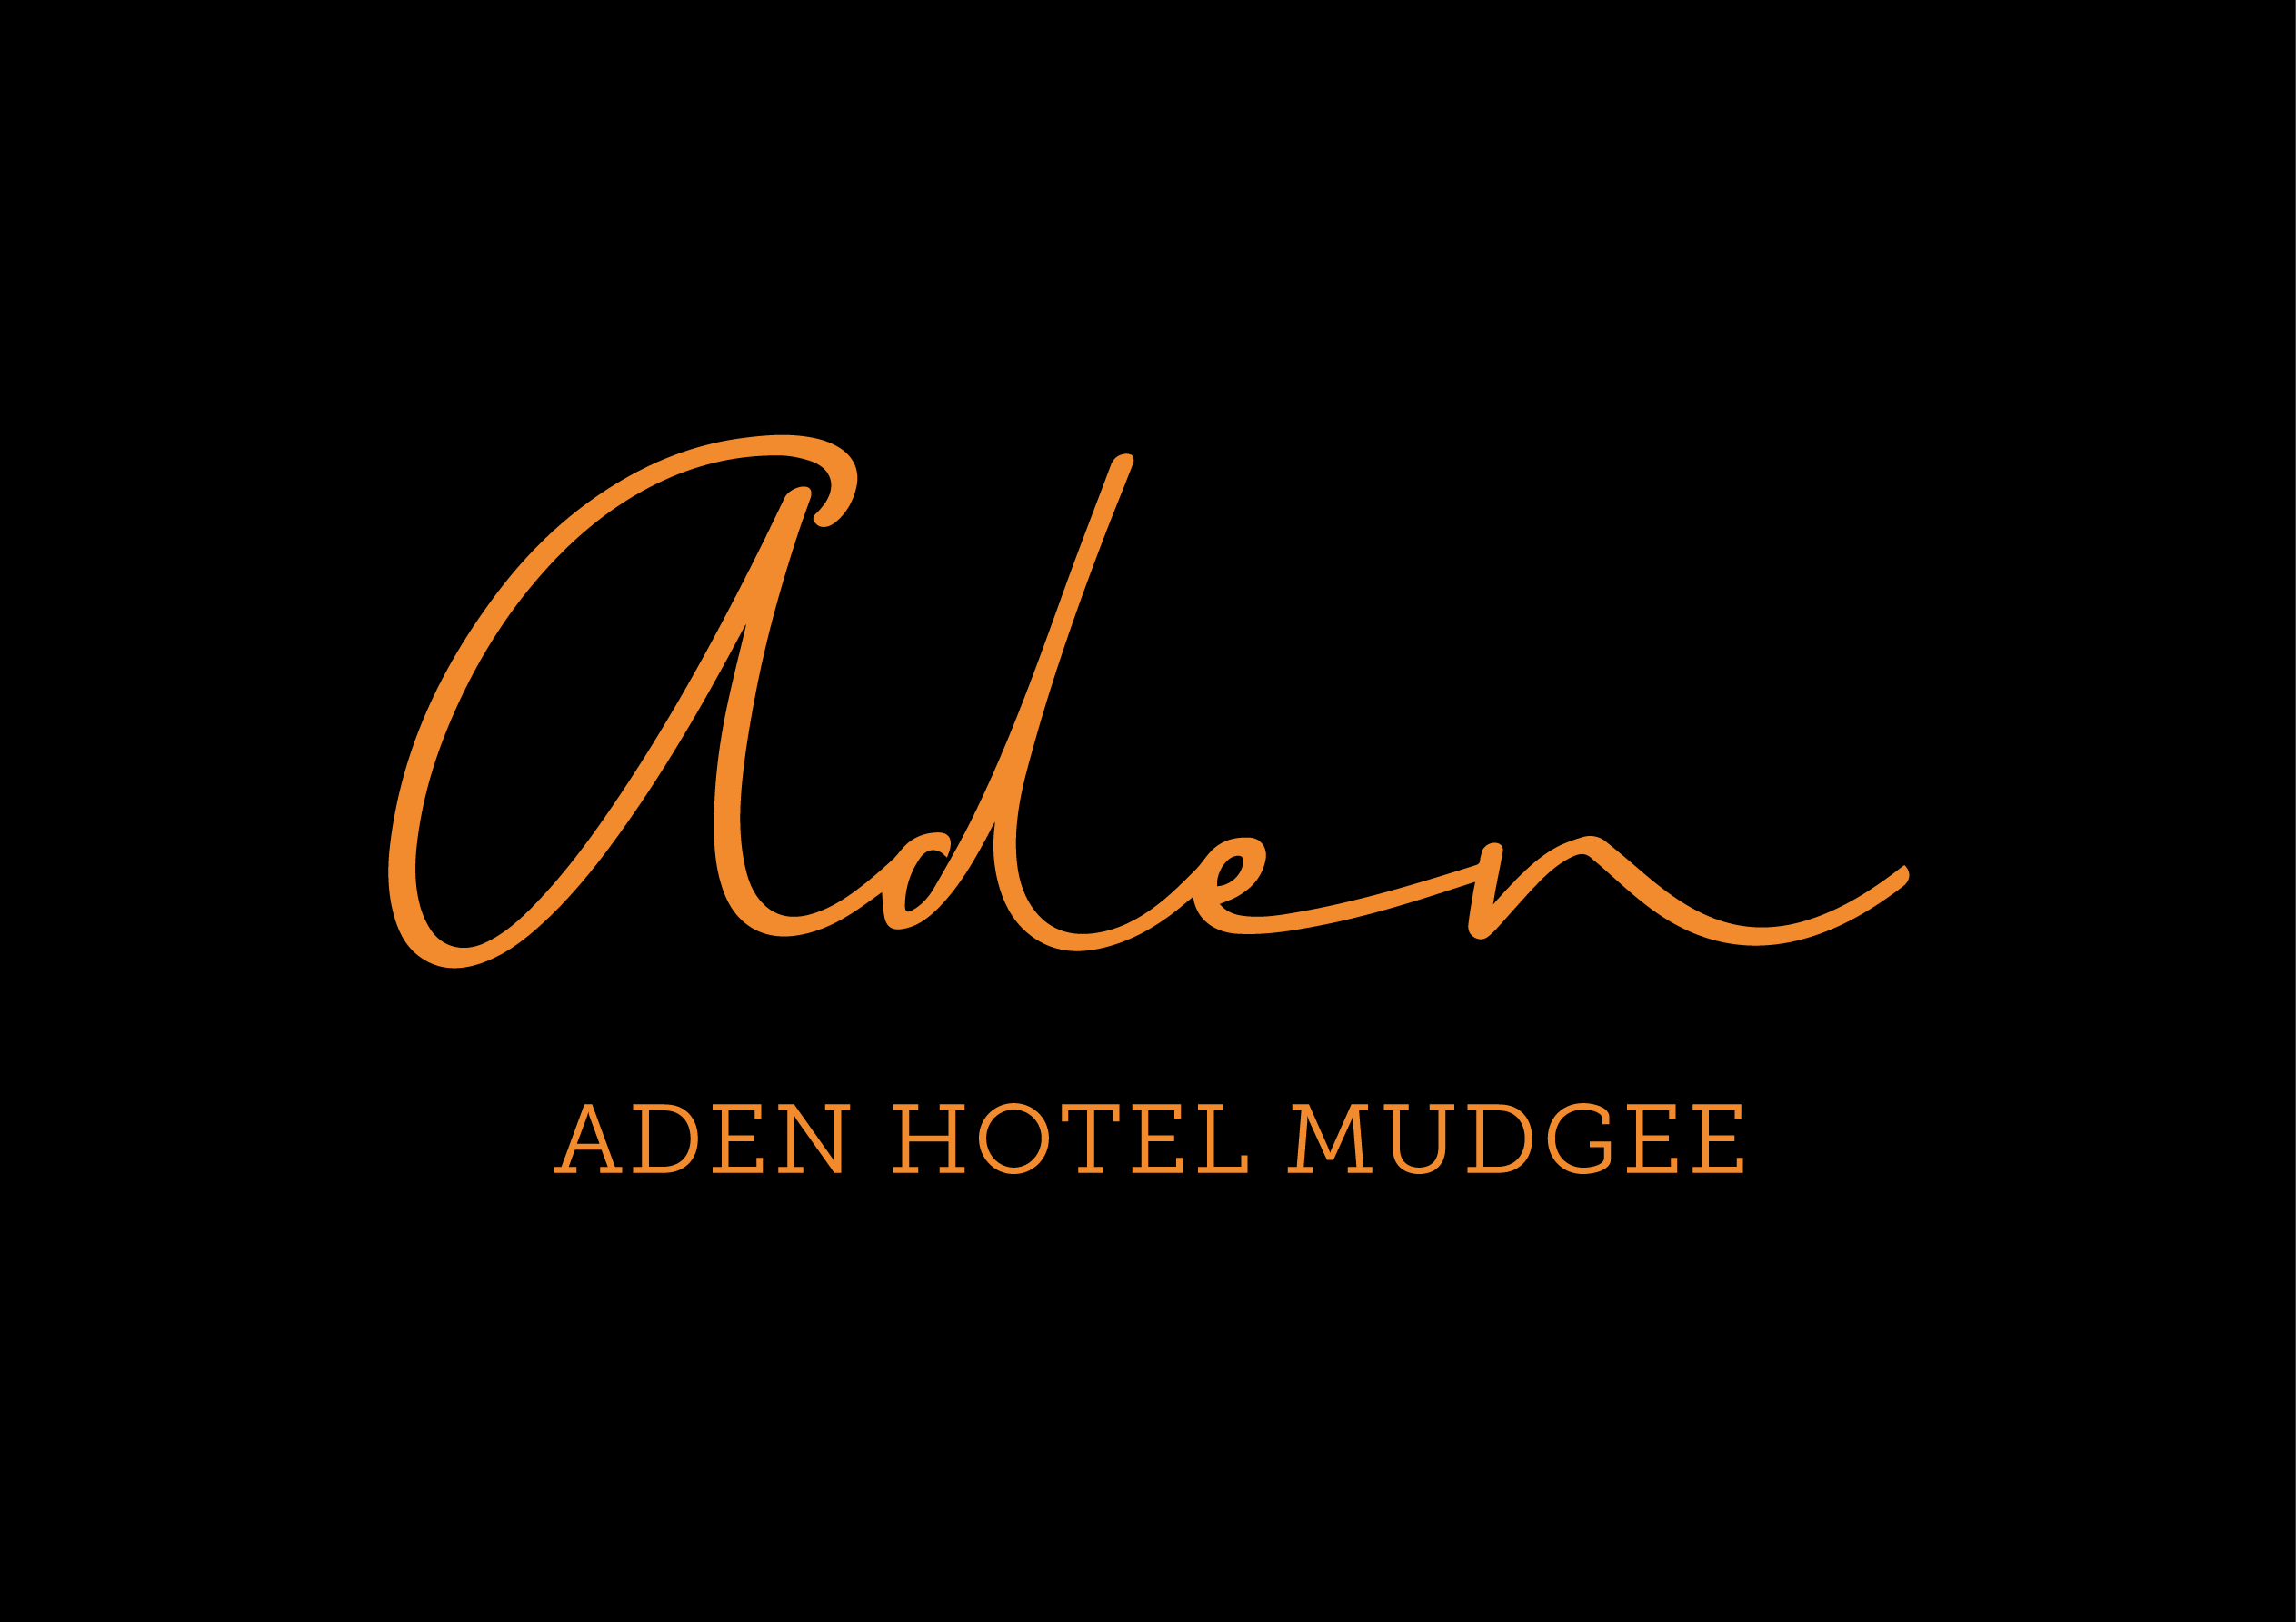 Comfort Inn Aden Hotel Mudgee - Accommodation Gold Coast